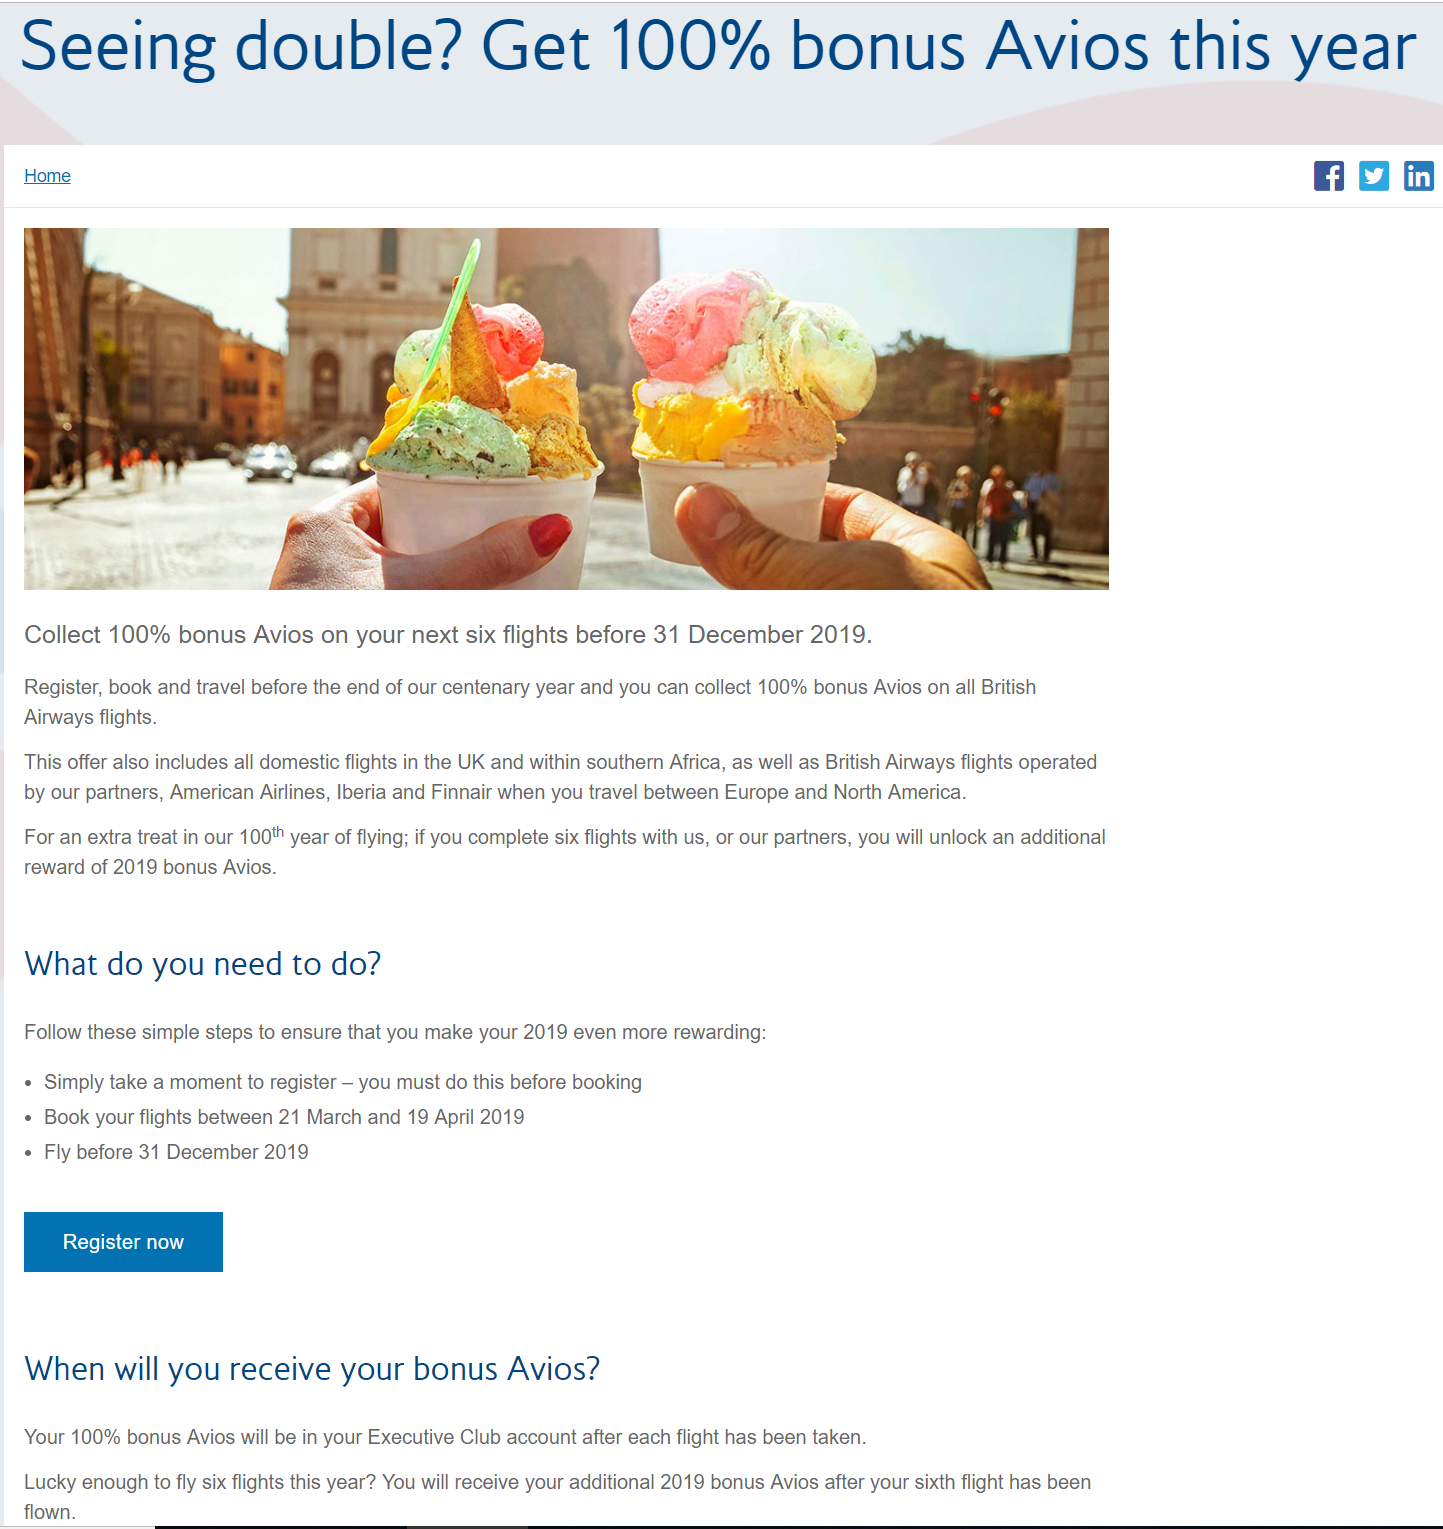 Miles And More Vs Avios British Airways 2x Avios For 2019 Flights Purchased By April 19